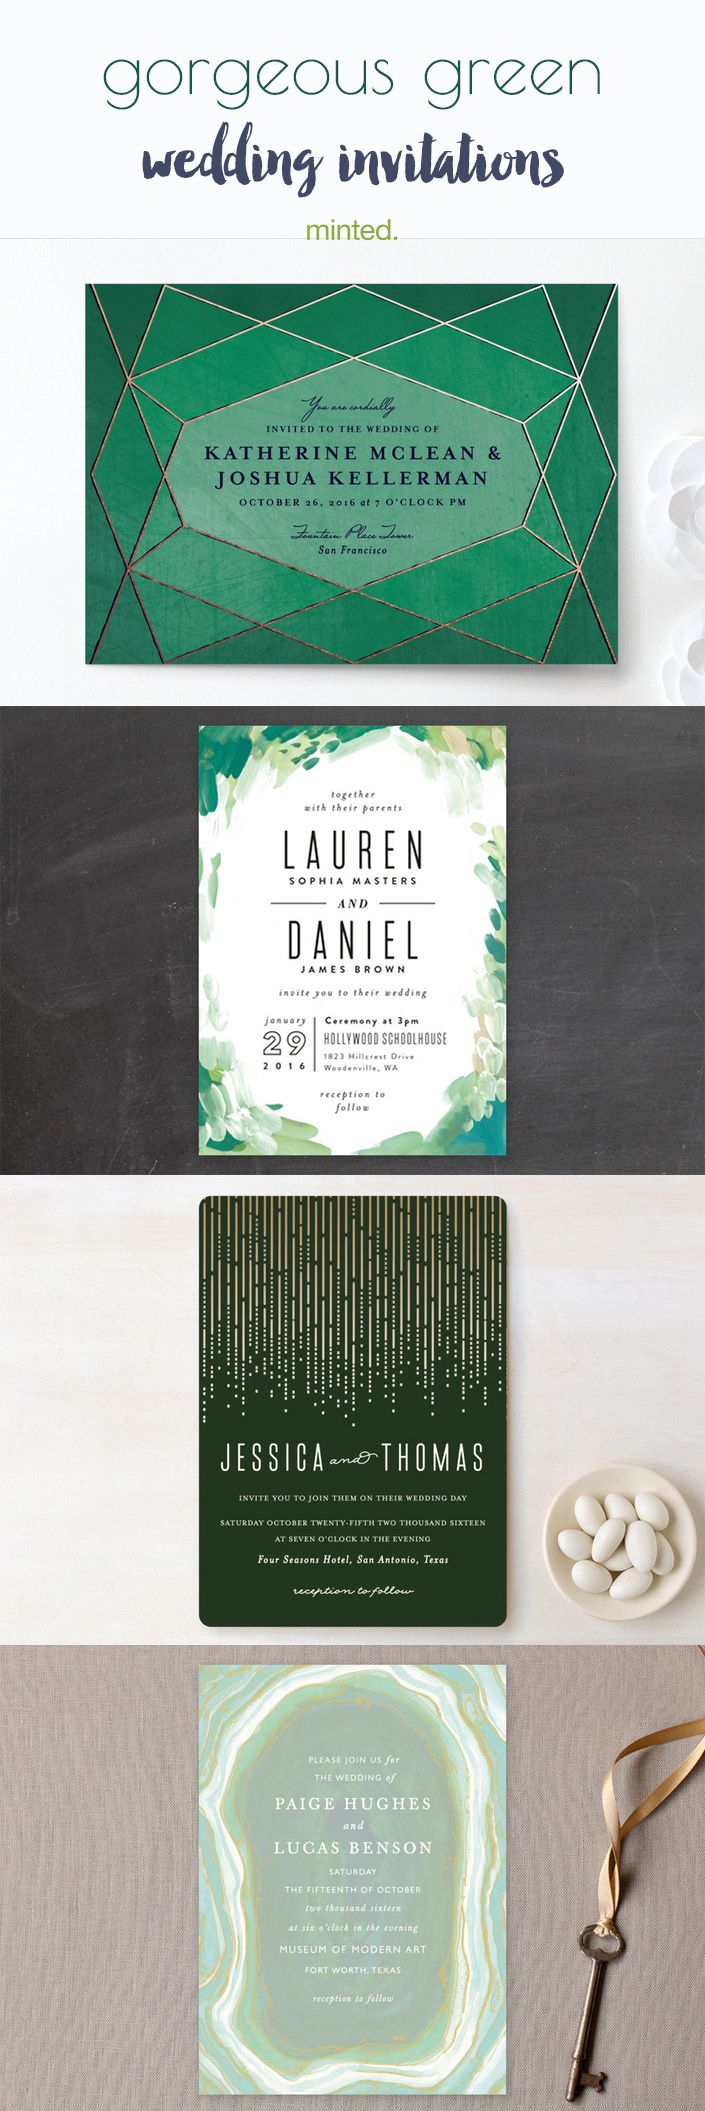 Gorgeous green wedding invitations perfect for emerald or lush green ...